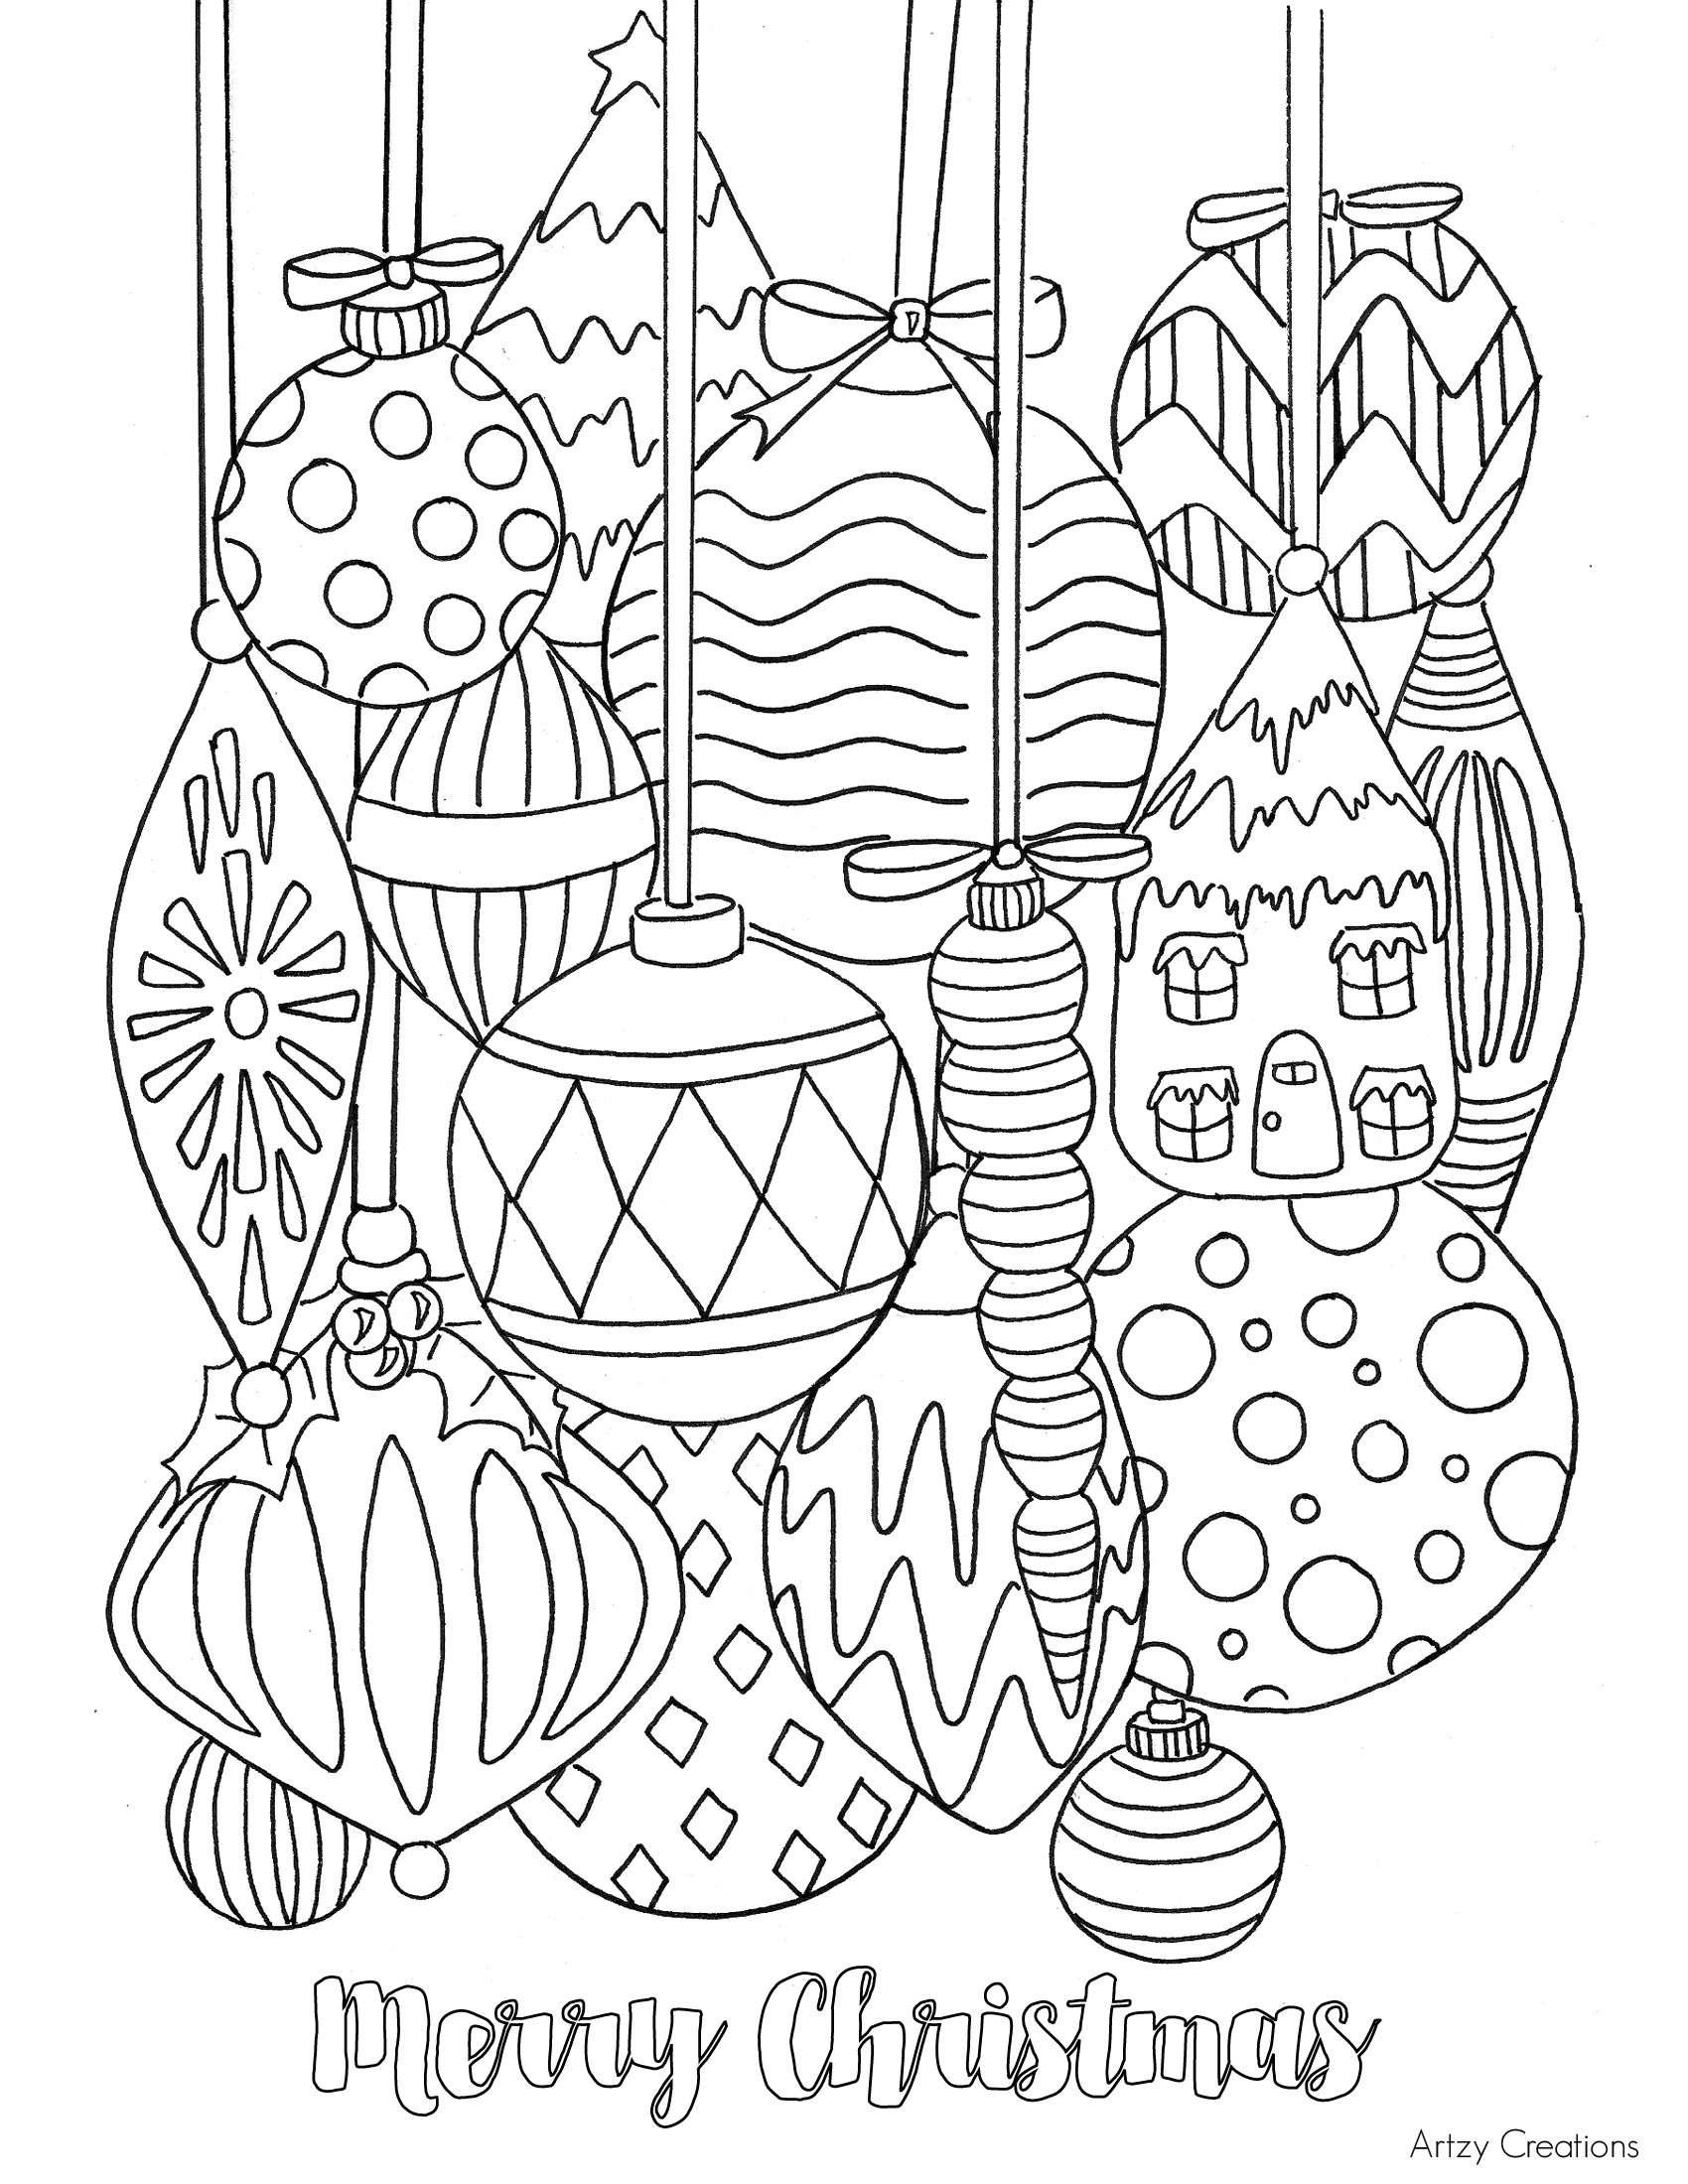 Christmas Coloring Pages For Print With Adult Color To Free